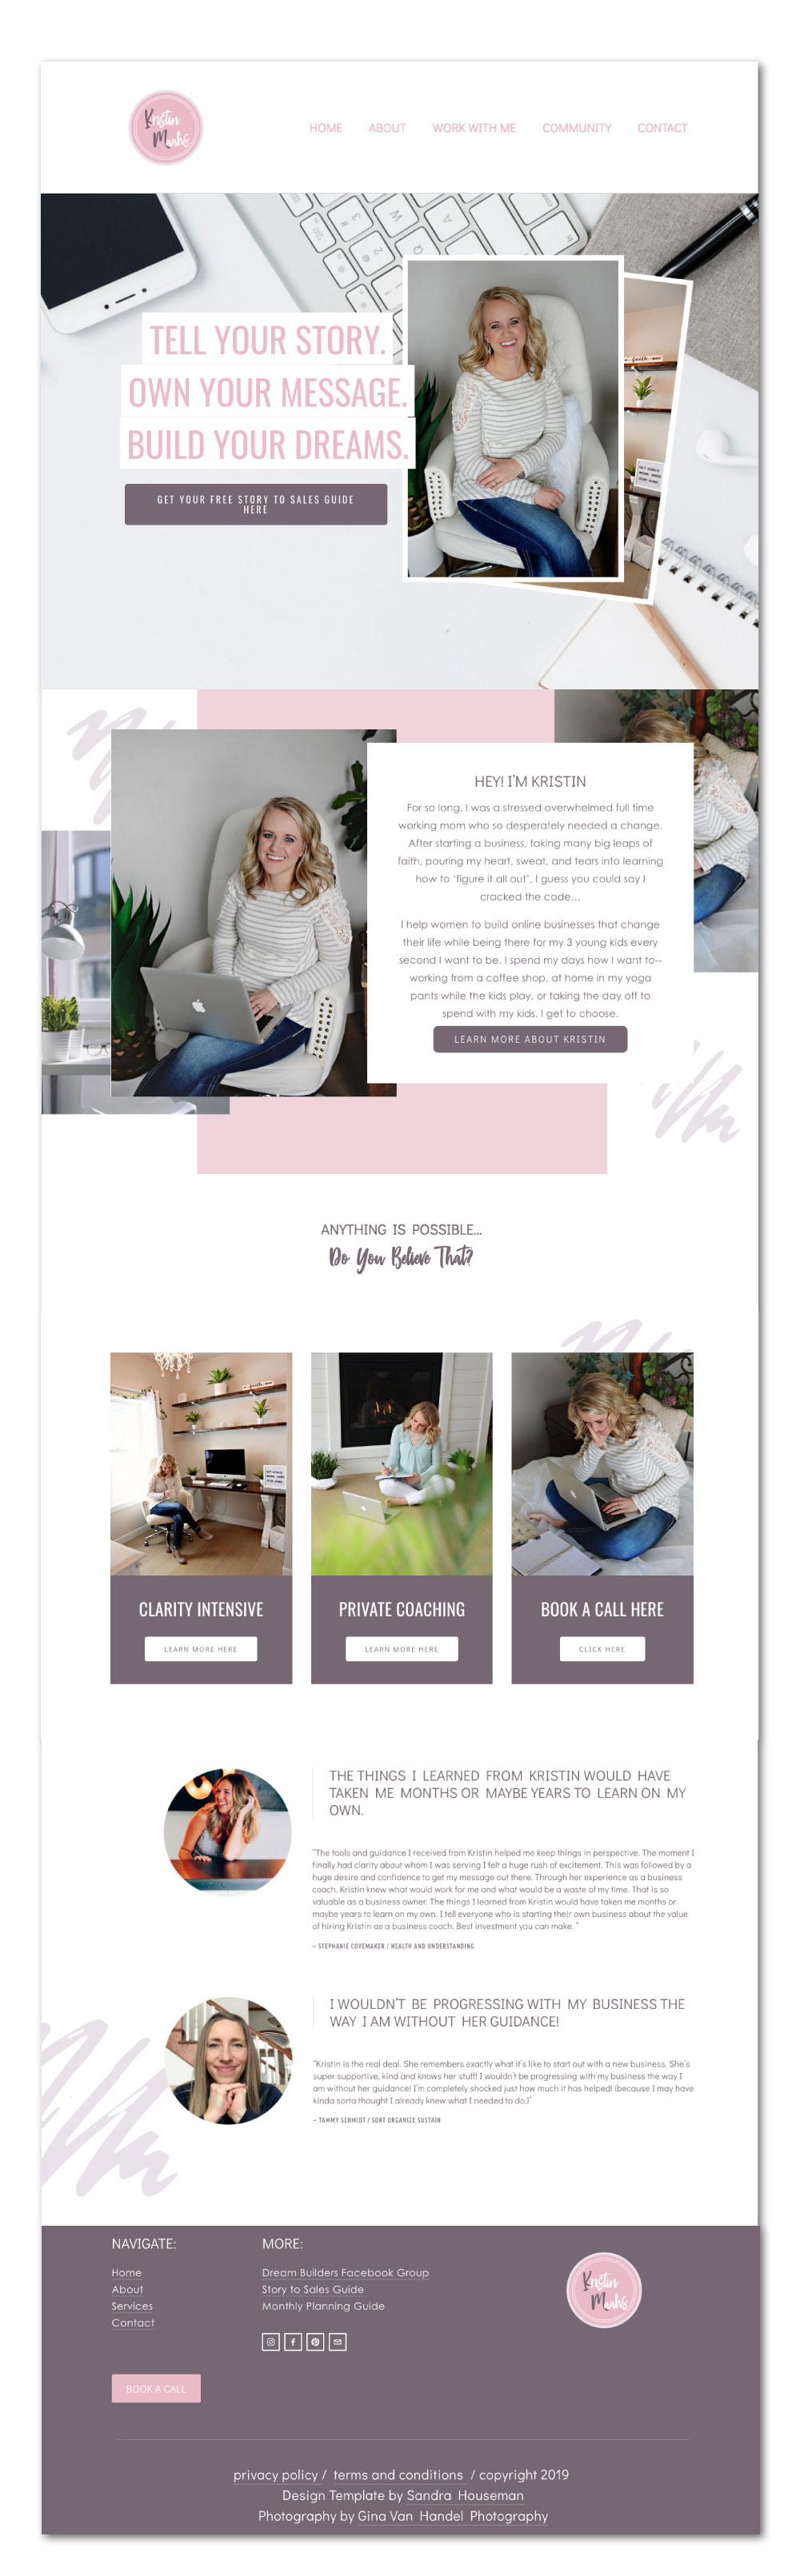 Squarespace template for a business coach